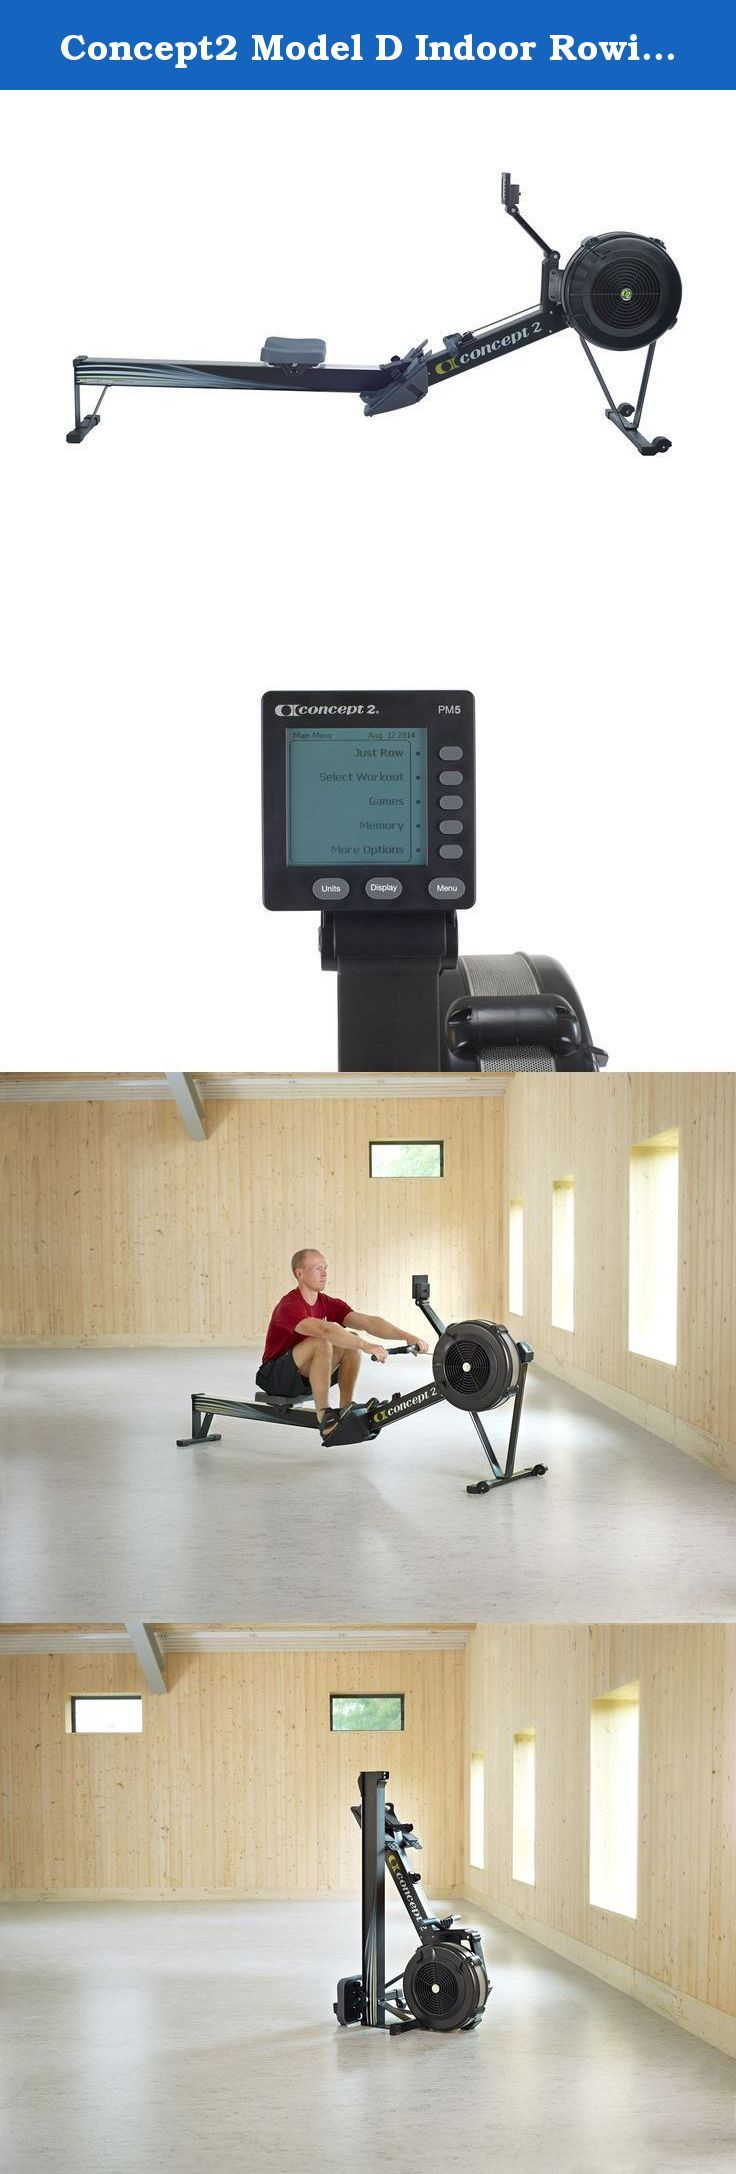 Concept2 Model D Indoor Rowing Machine (Black) with PM5. The dependable performance of our Model D Indoor Rower has made it the bestselling indoor rower in the world. Recognized by competitive rowers as the standard for indoor training, the Model D delivers an effective cardiovascular workout that will increase your fitness level and improve muscle tone. The Model D is efficiently engineered and will last a lifetime. The Model D is the same machine used by Olympic-level athletes to train…